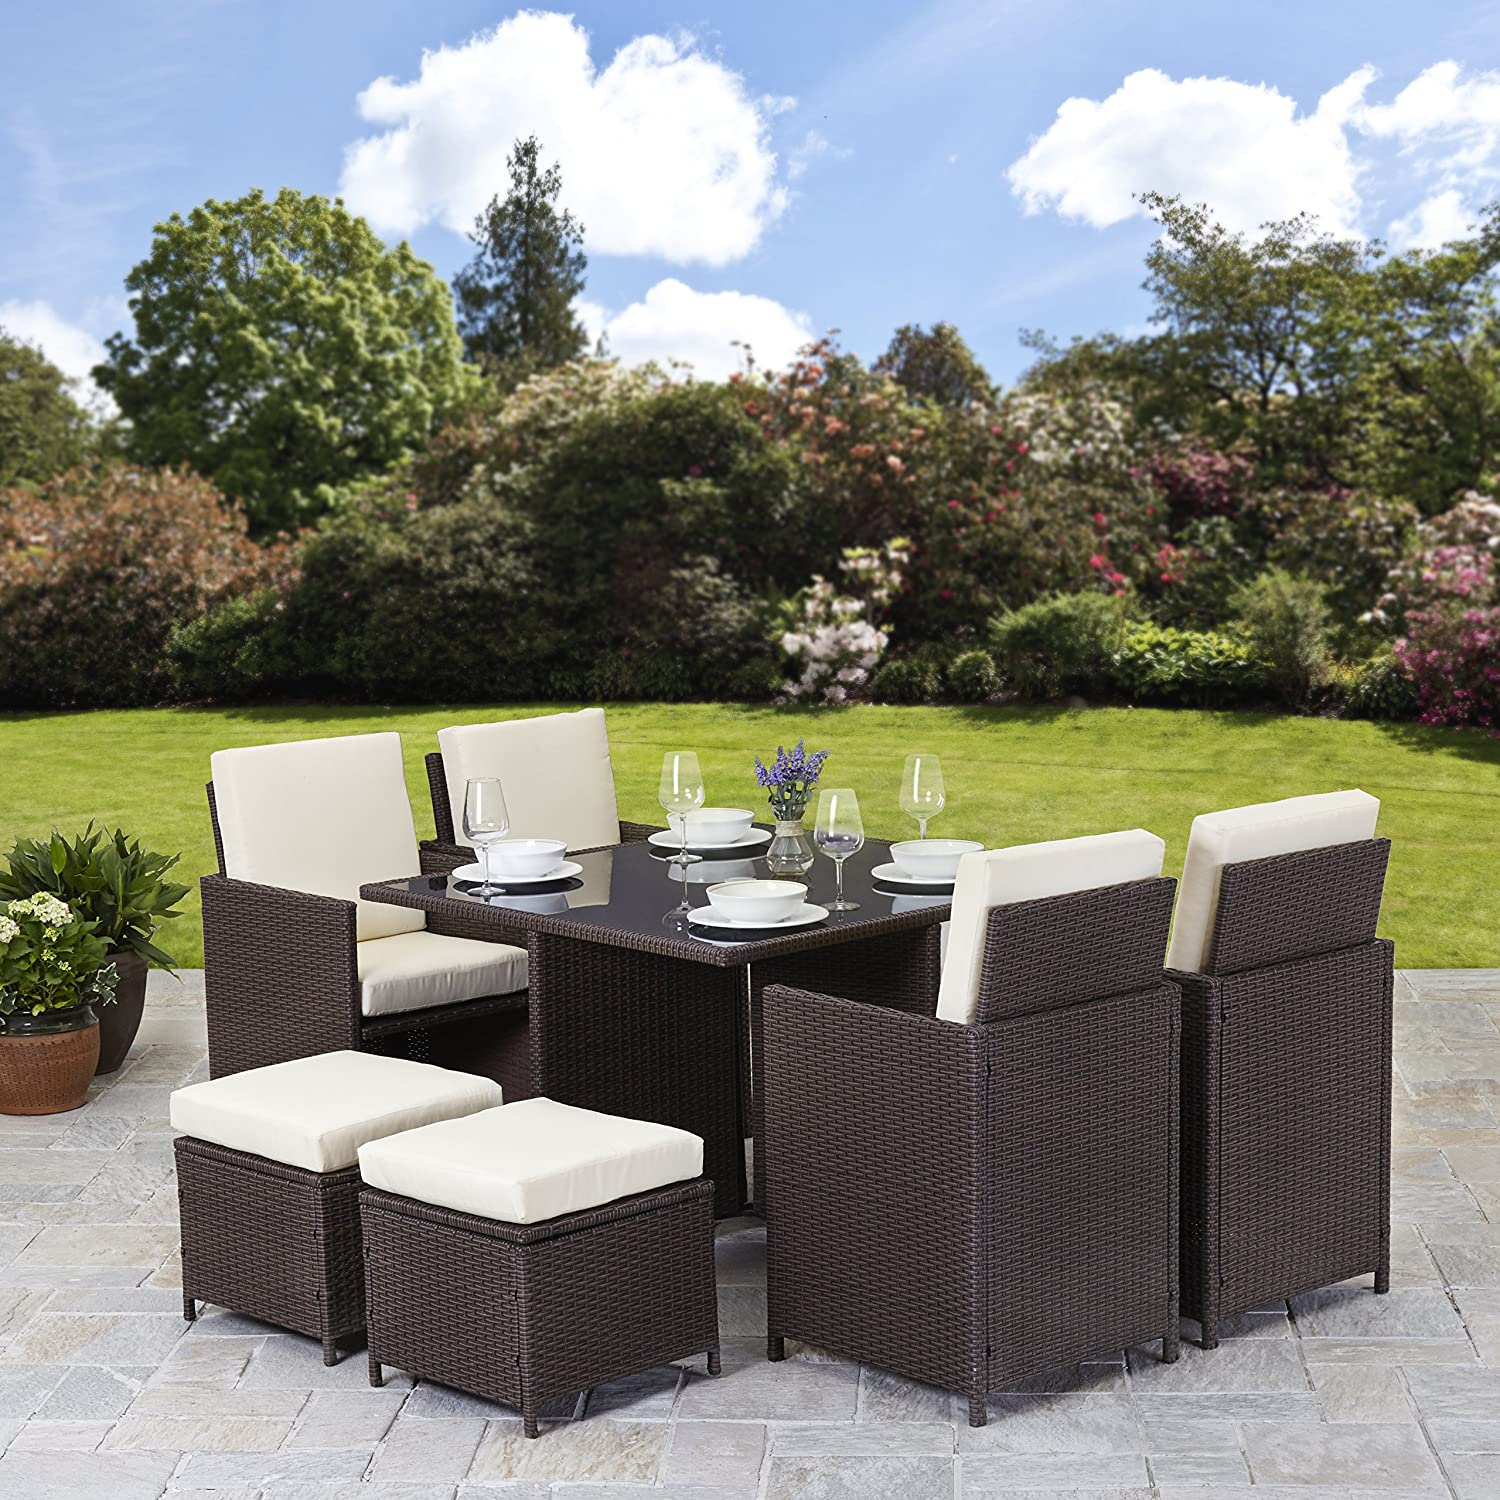 Good Rattan Cube Garden Furniture Set 8 Seater Outdoor Wicker 9pcs With Parasol  (Brown): Amazon.co.uk: Garden U0026 Outdoors Part 21